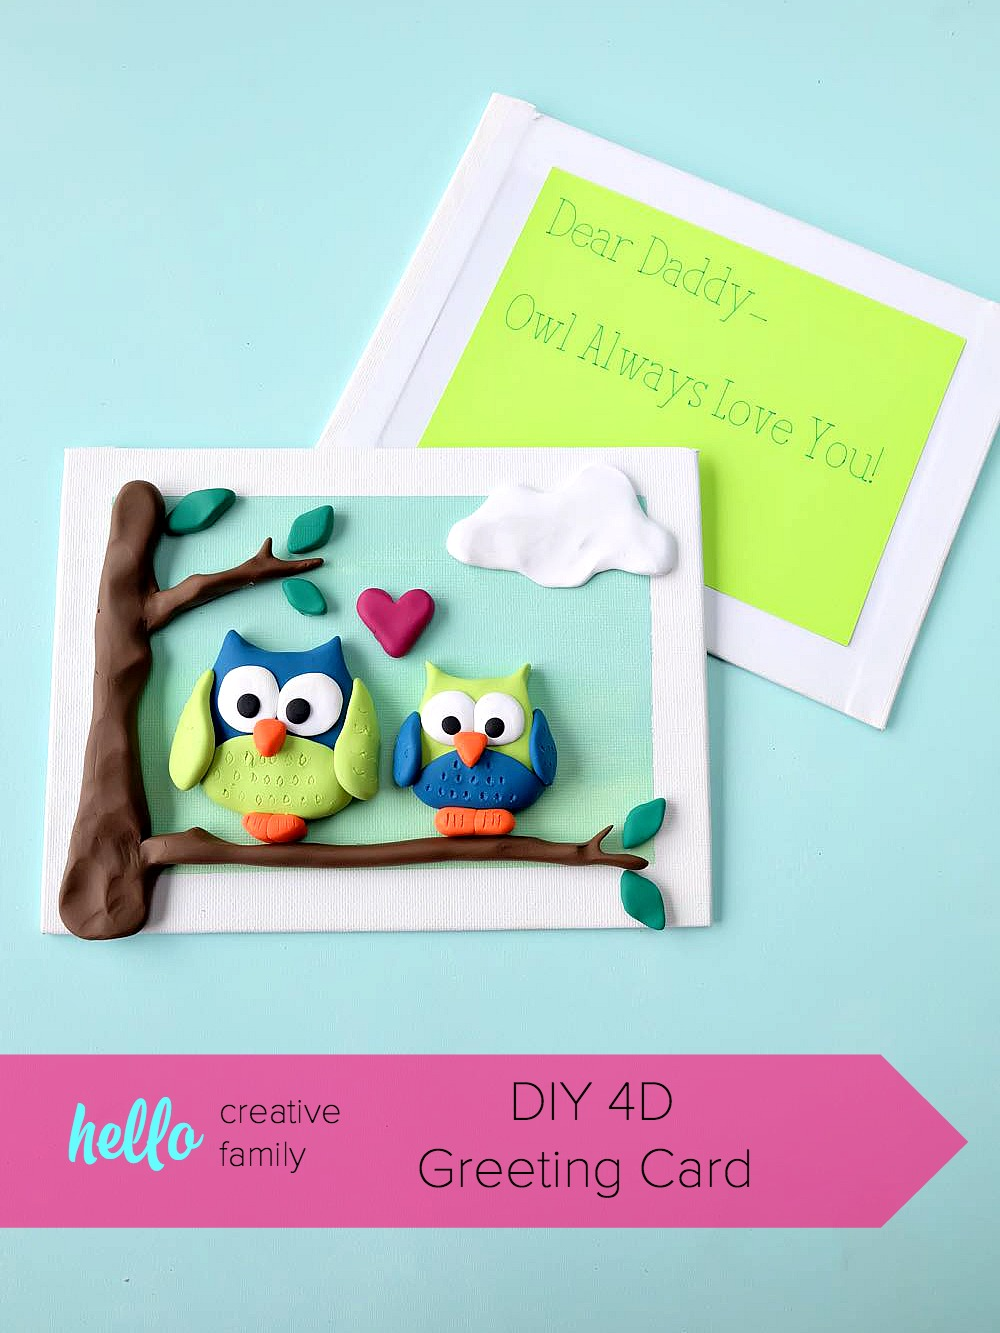 Diy 4d greeting card hello creative family make an adorable 4d greeting card using polymer clay and a dollar store artist canvas kristyandbryce Image collections